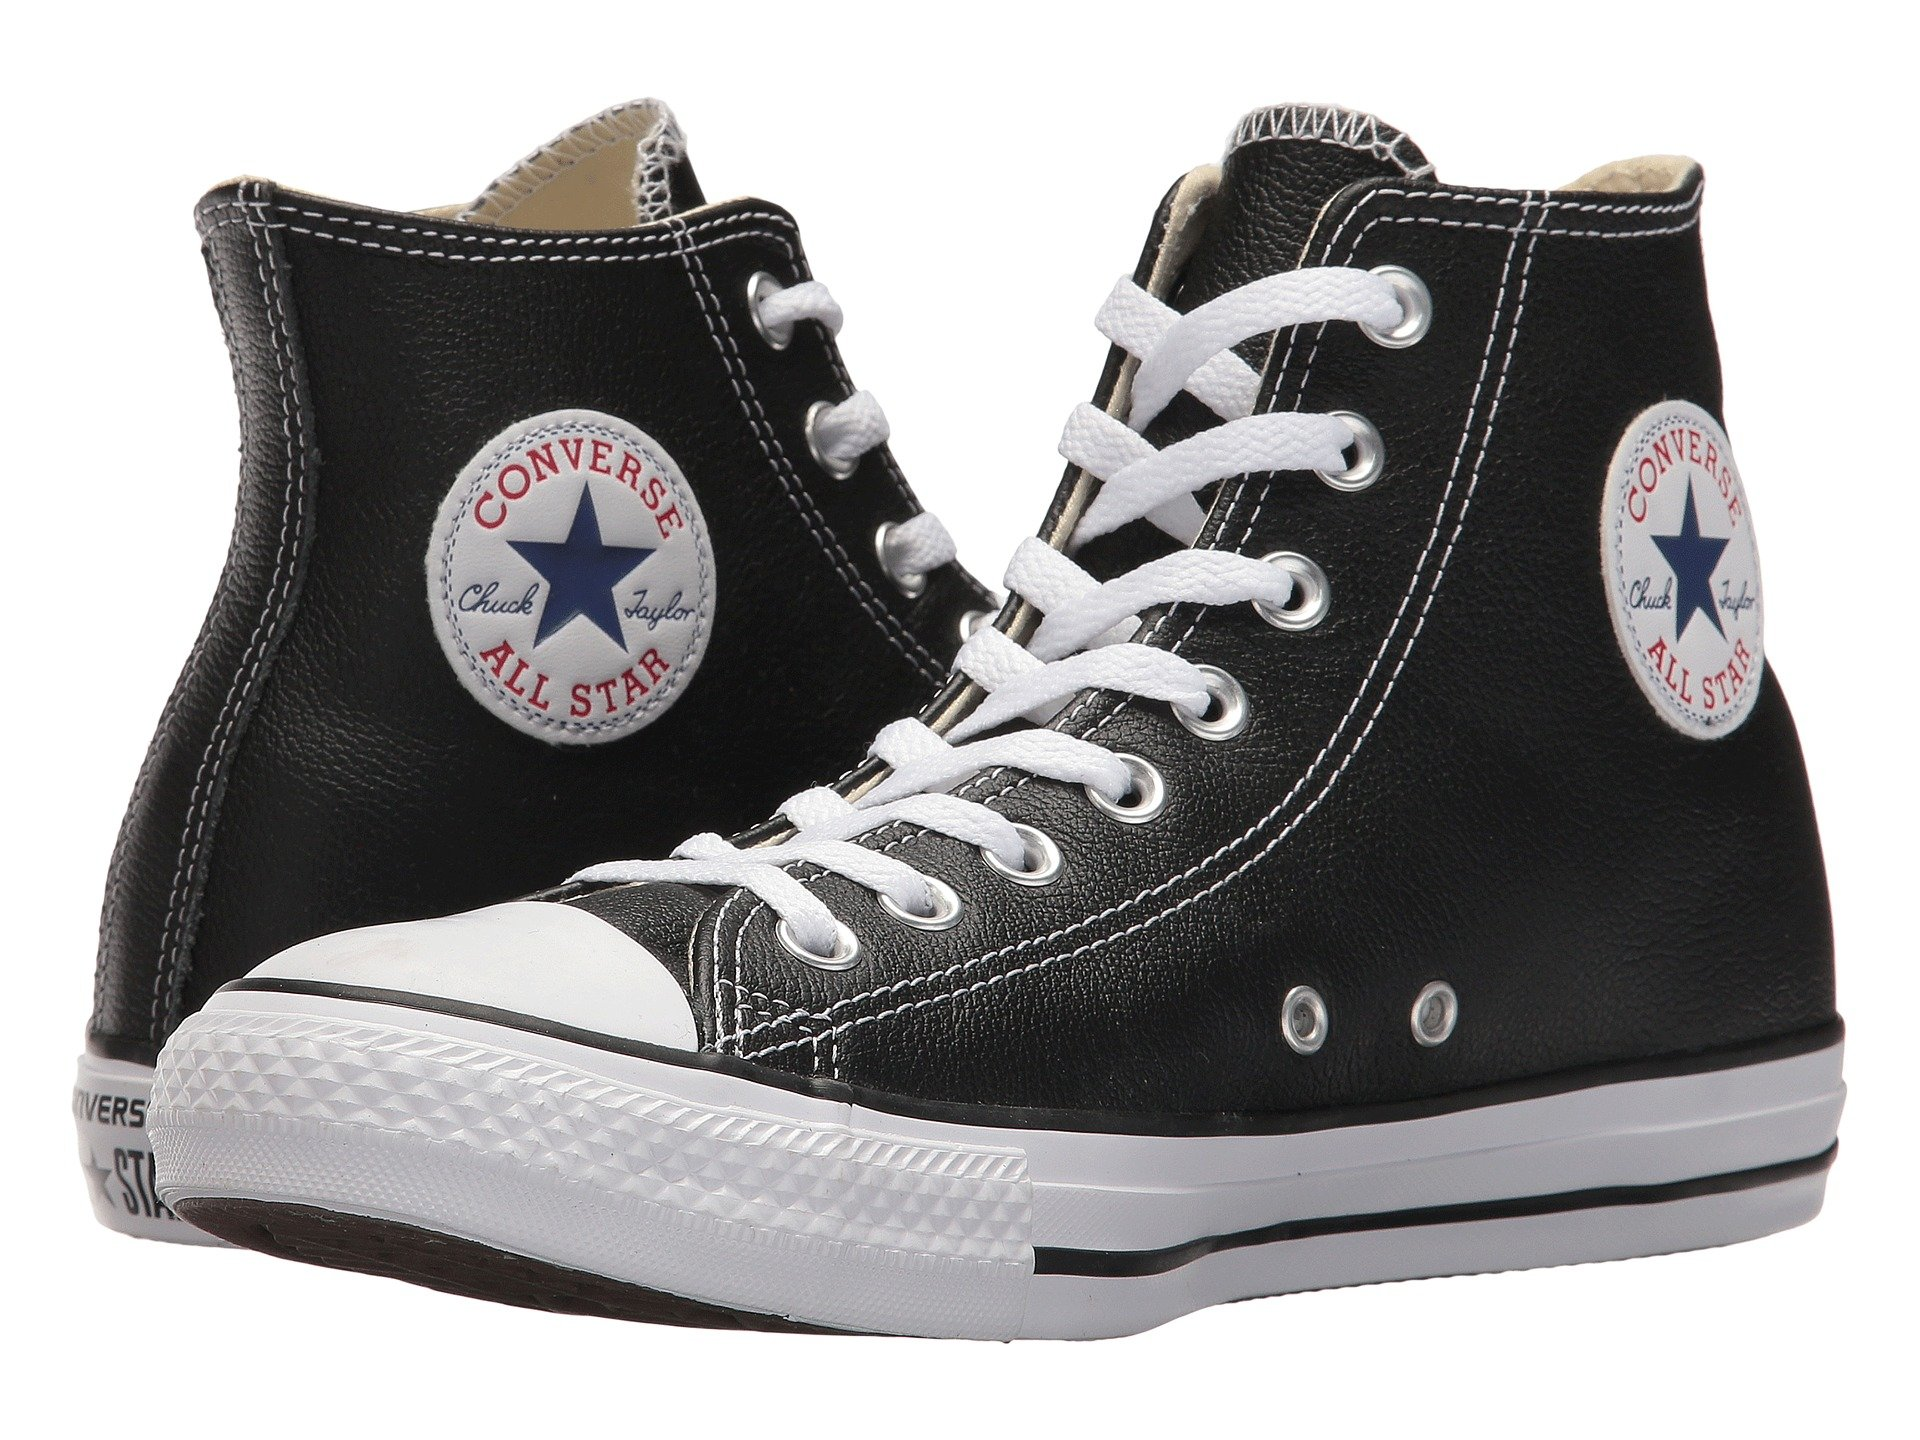 4badf3d4d3f1 Chuck Taylor® All Star® Lift Slip Ox.  64.95. 4Rated 4 stars. Black.  Converse